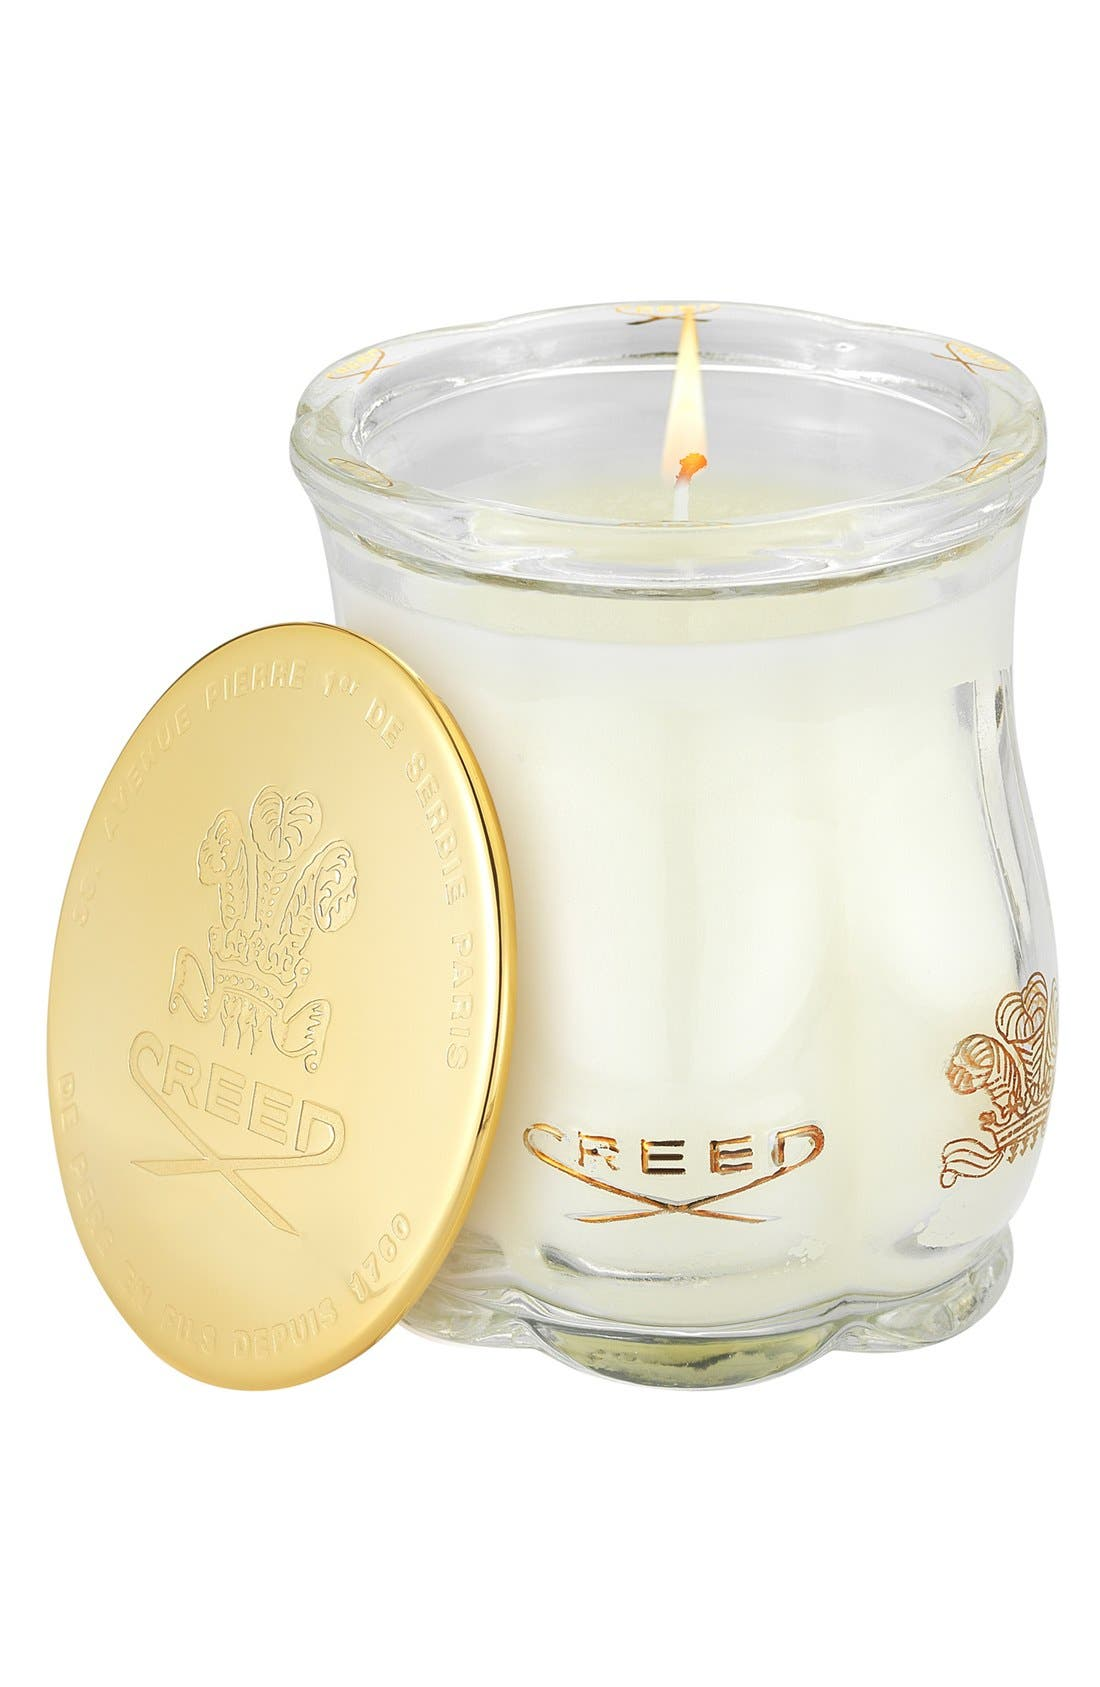 Alternate Image 1 Selected - Creed 'Spring Flower' Beeswax Candle